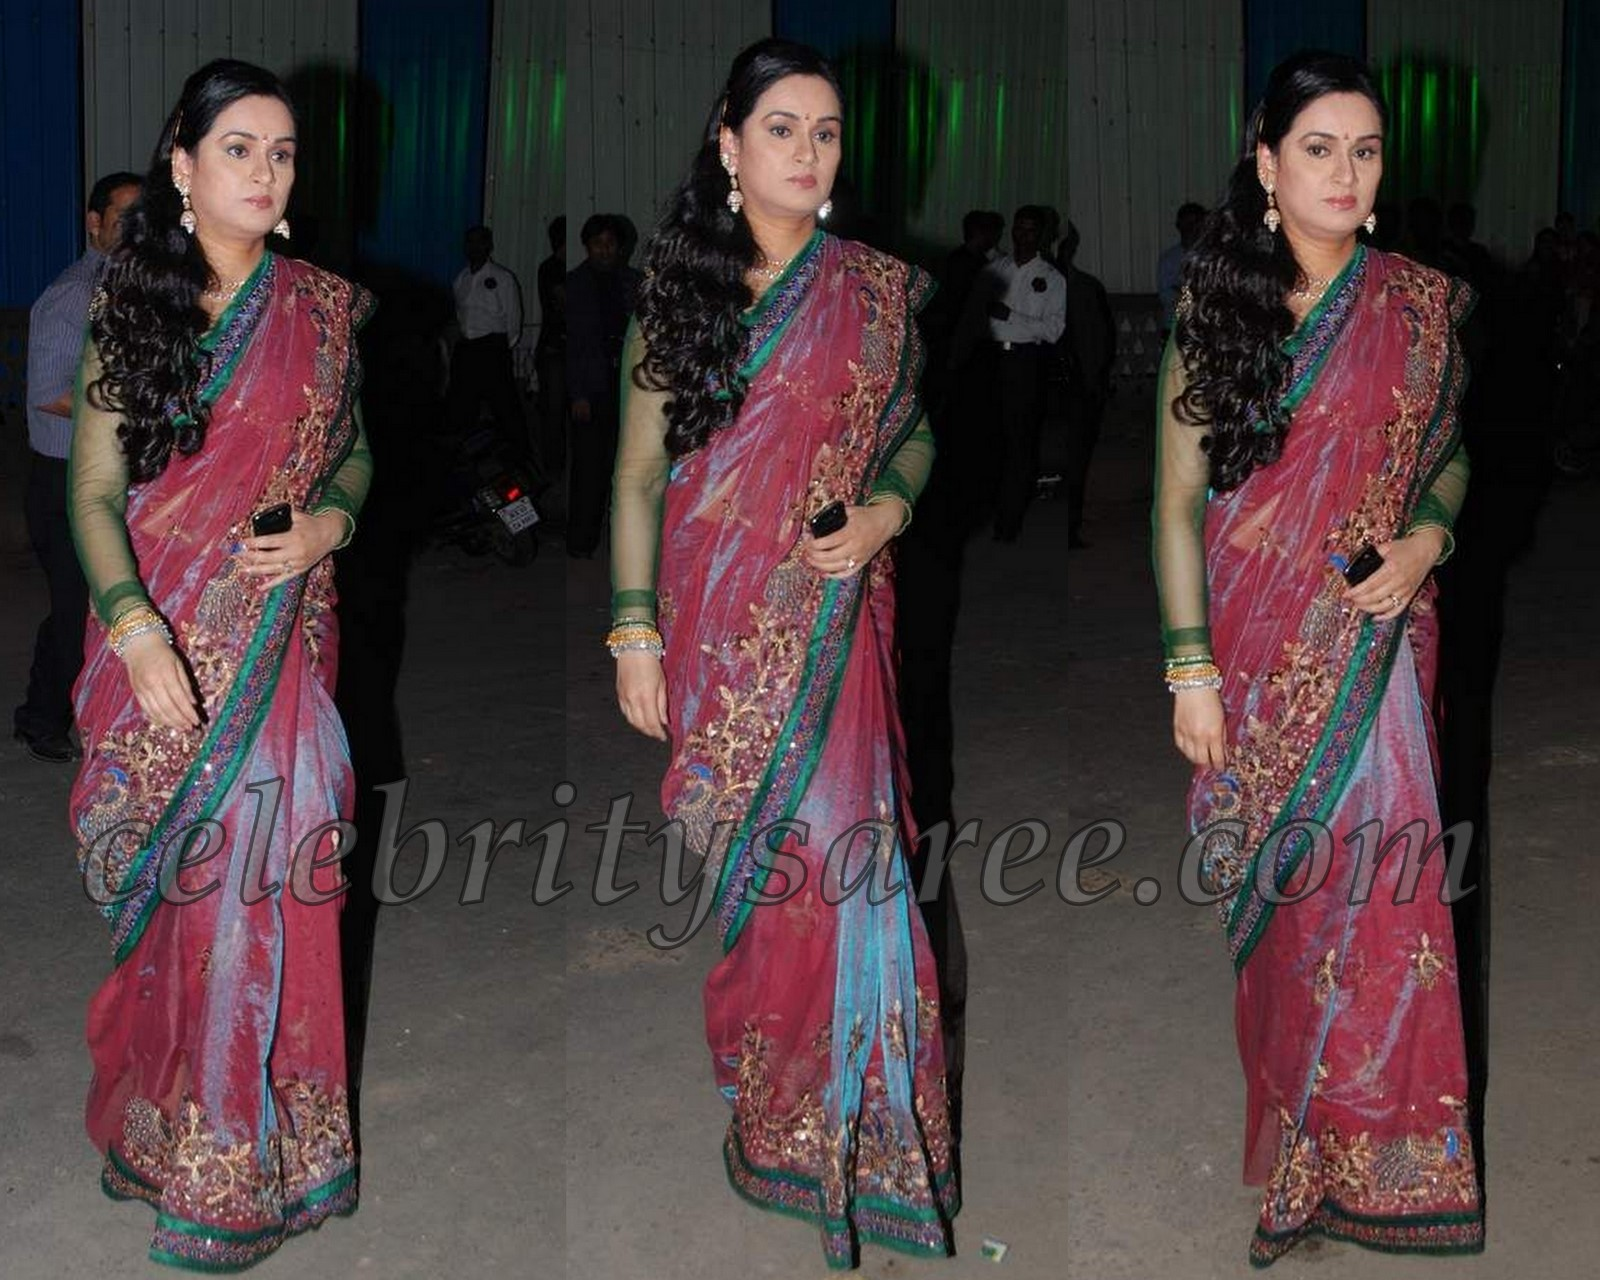 padmini kolhapure in saree - photo #5